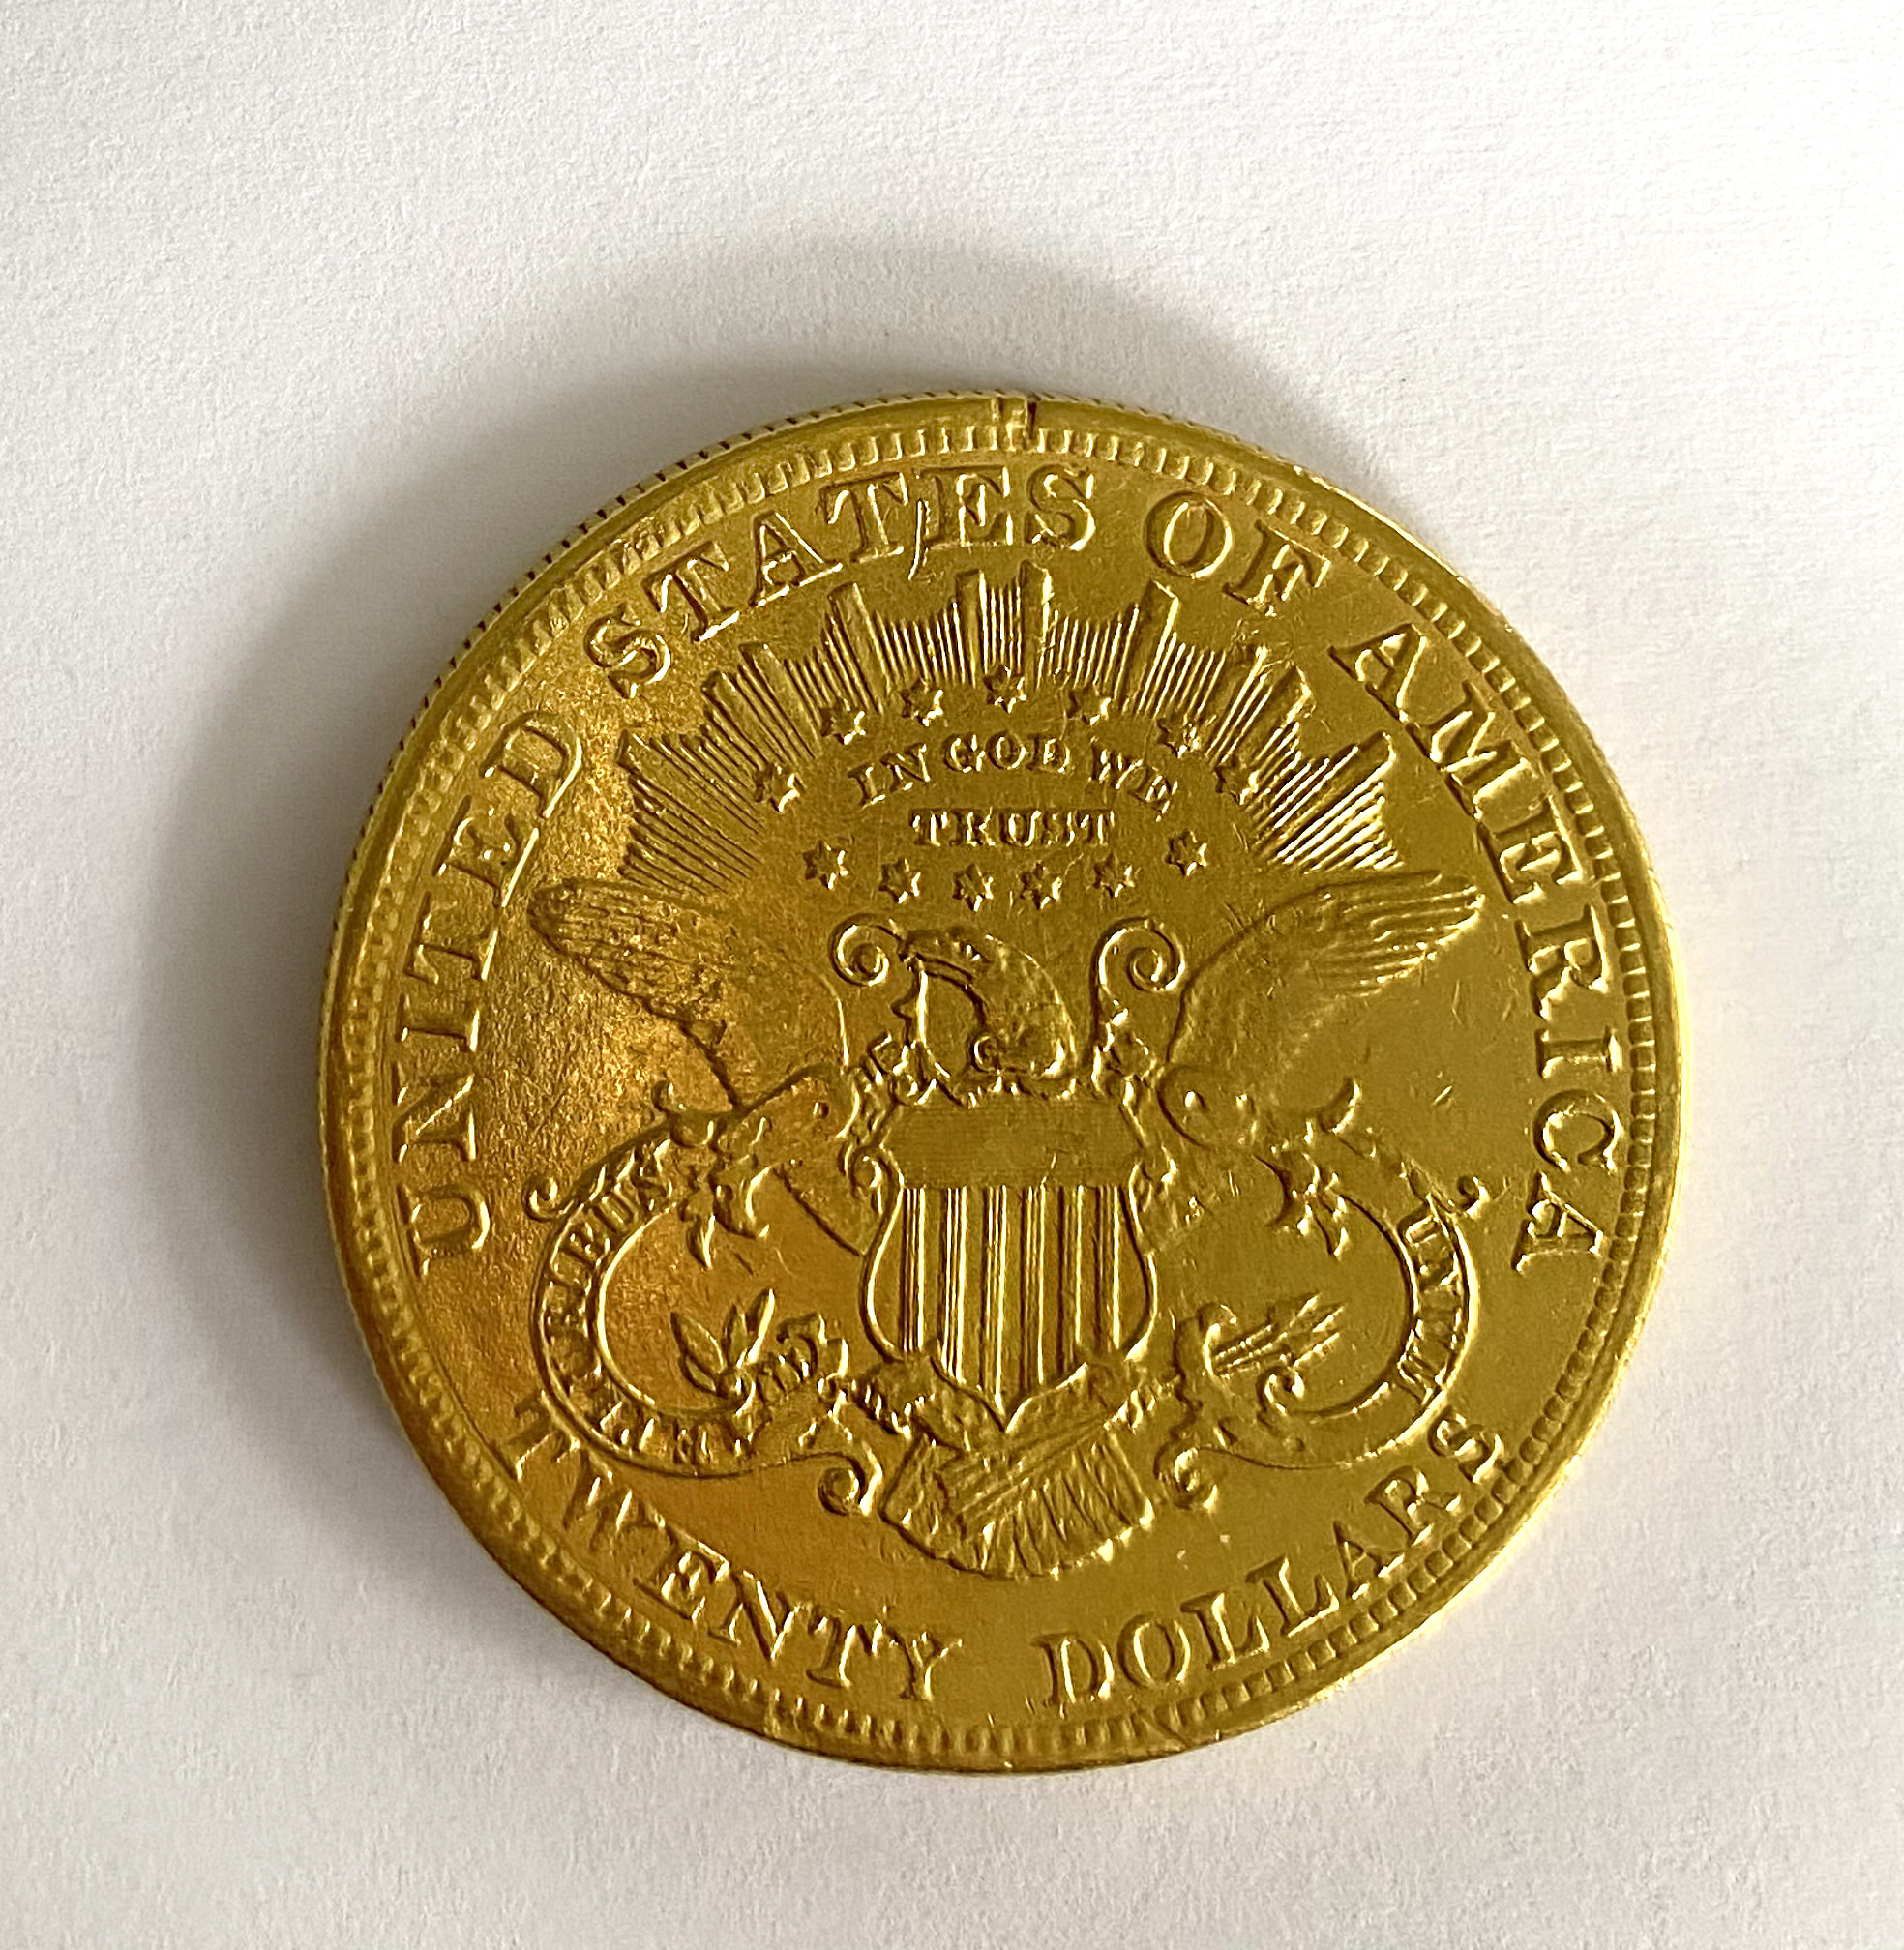 A United States of America $20 coin, - Image 2 of 2